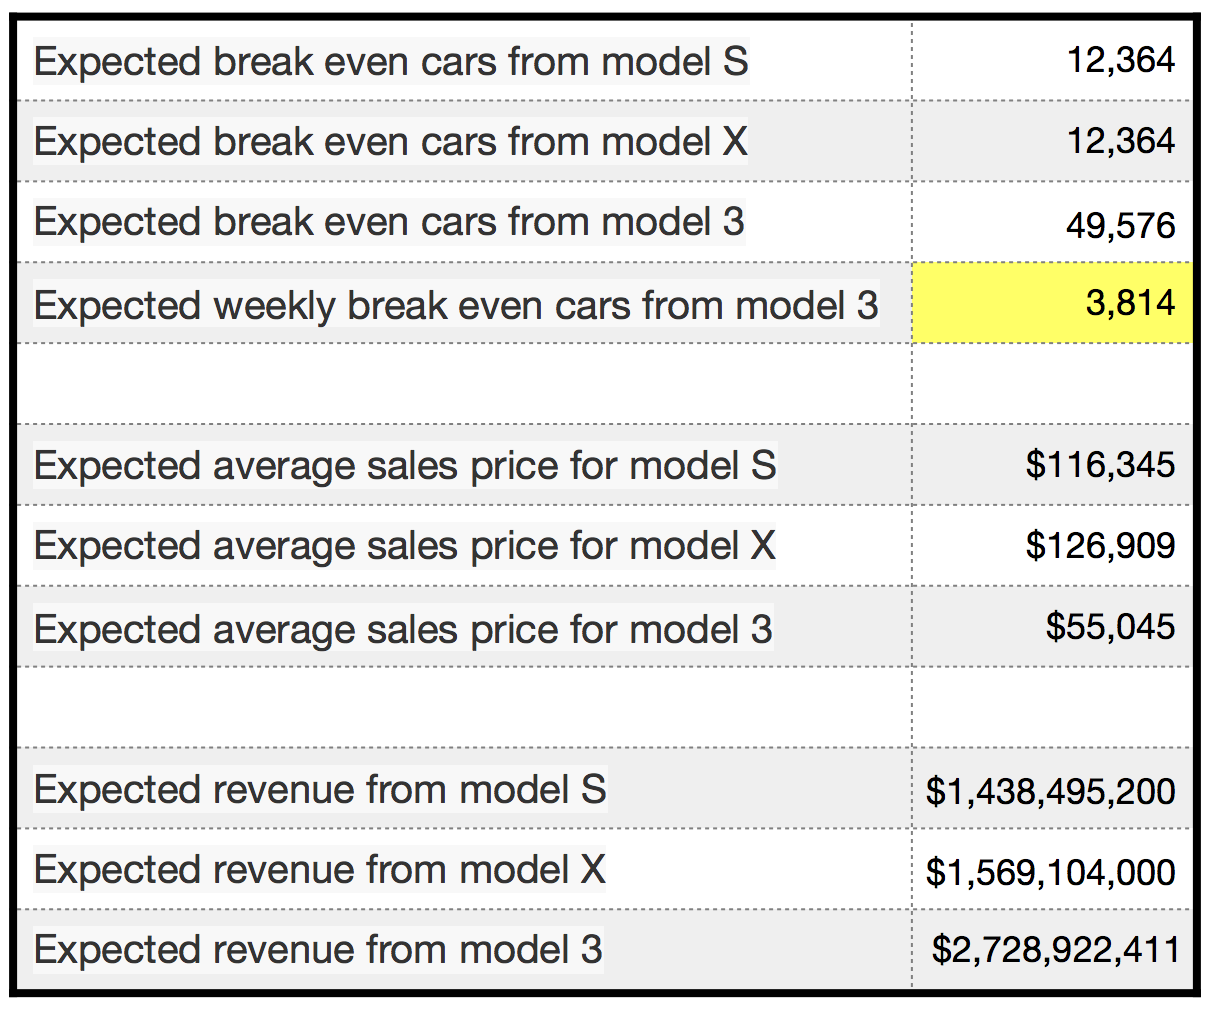 Tesla On The Verge Of Costs & Revenues Breaking Even